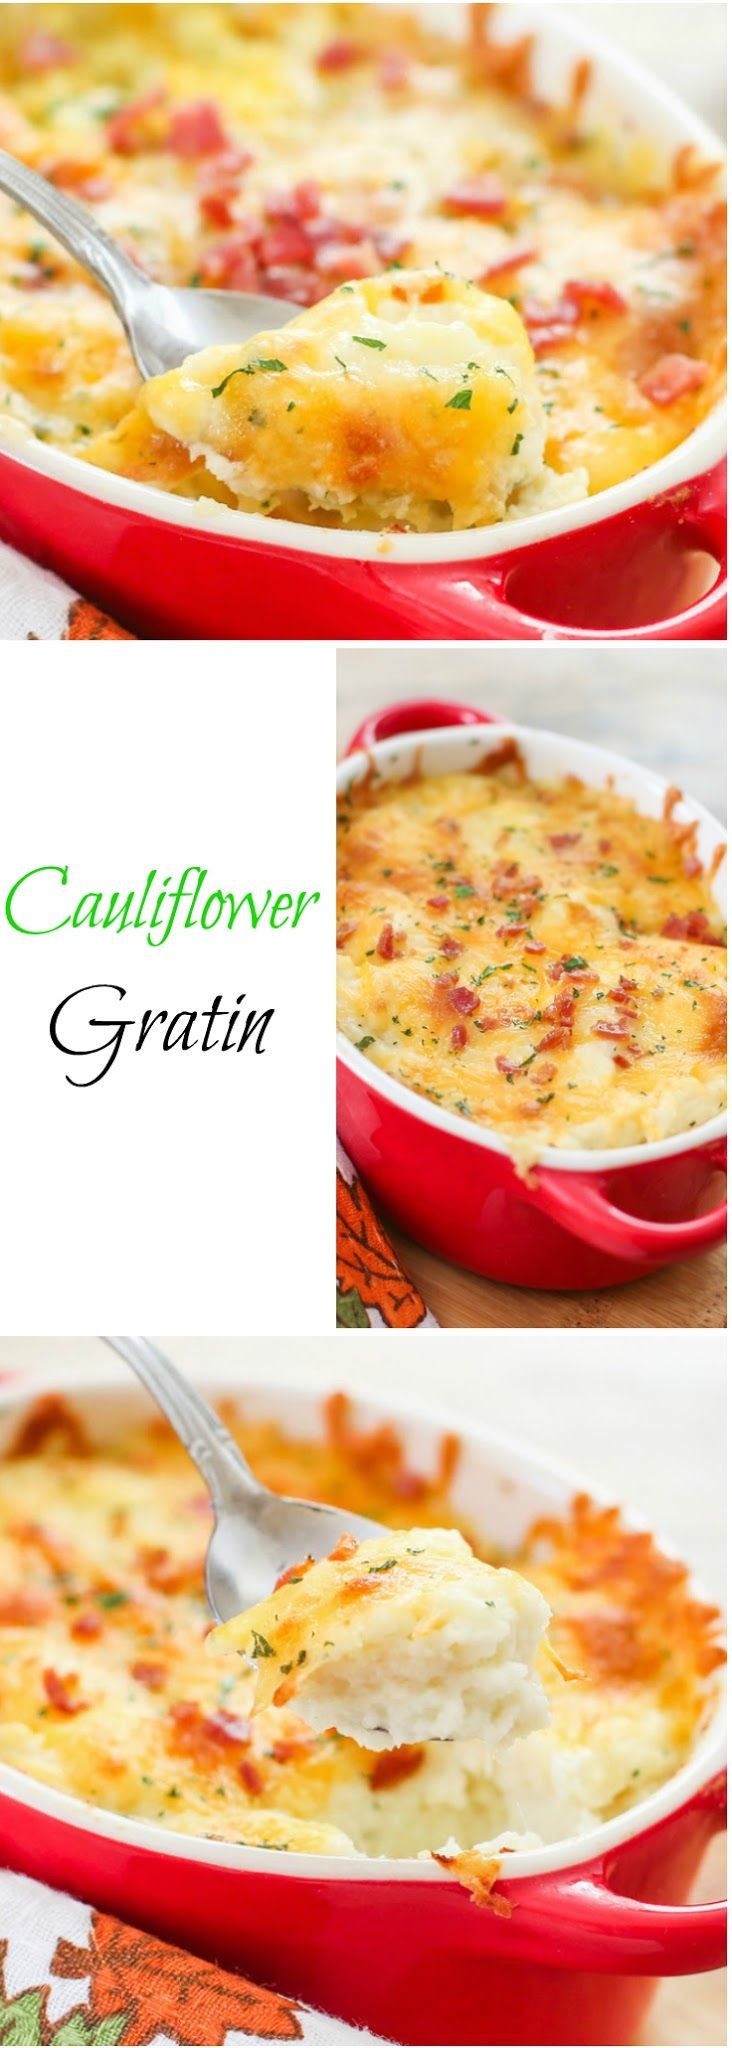 Cauliflower Gratin Healthier Without The Potato And Just As Delicious Kirbie S Cravings